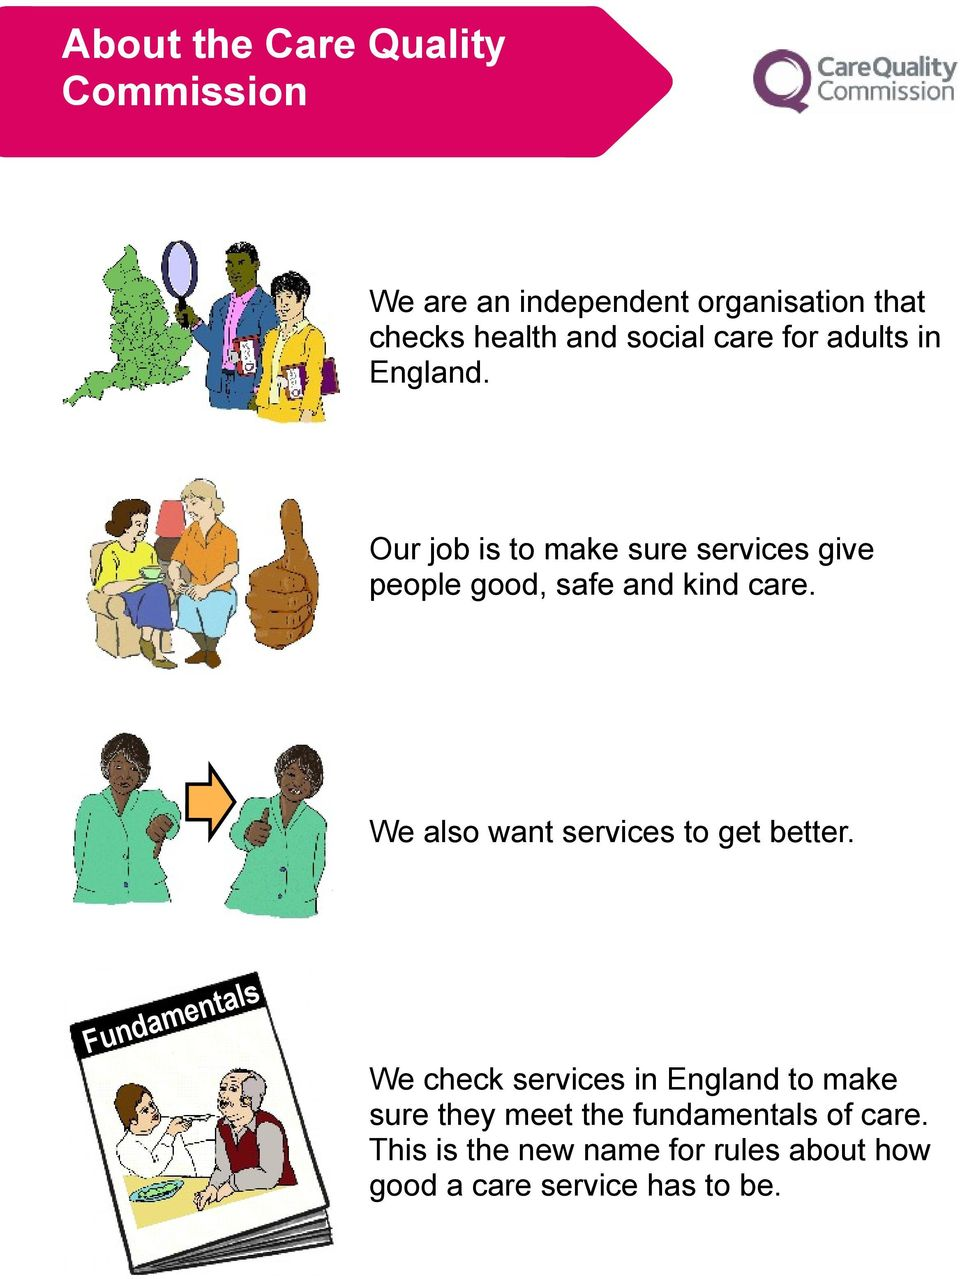 We also want services to get better.